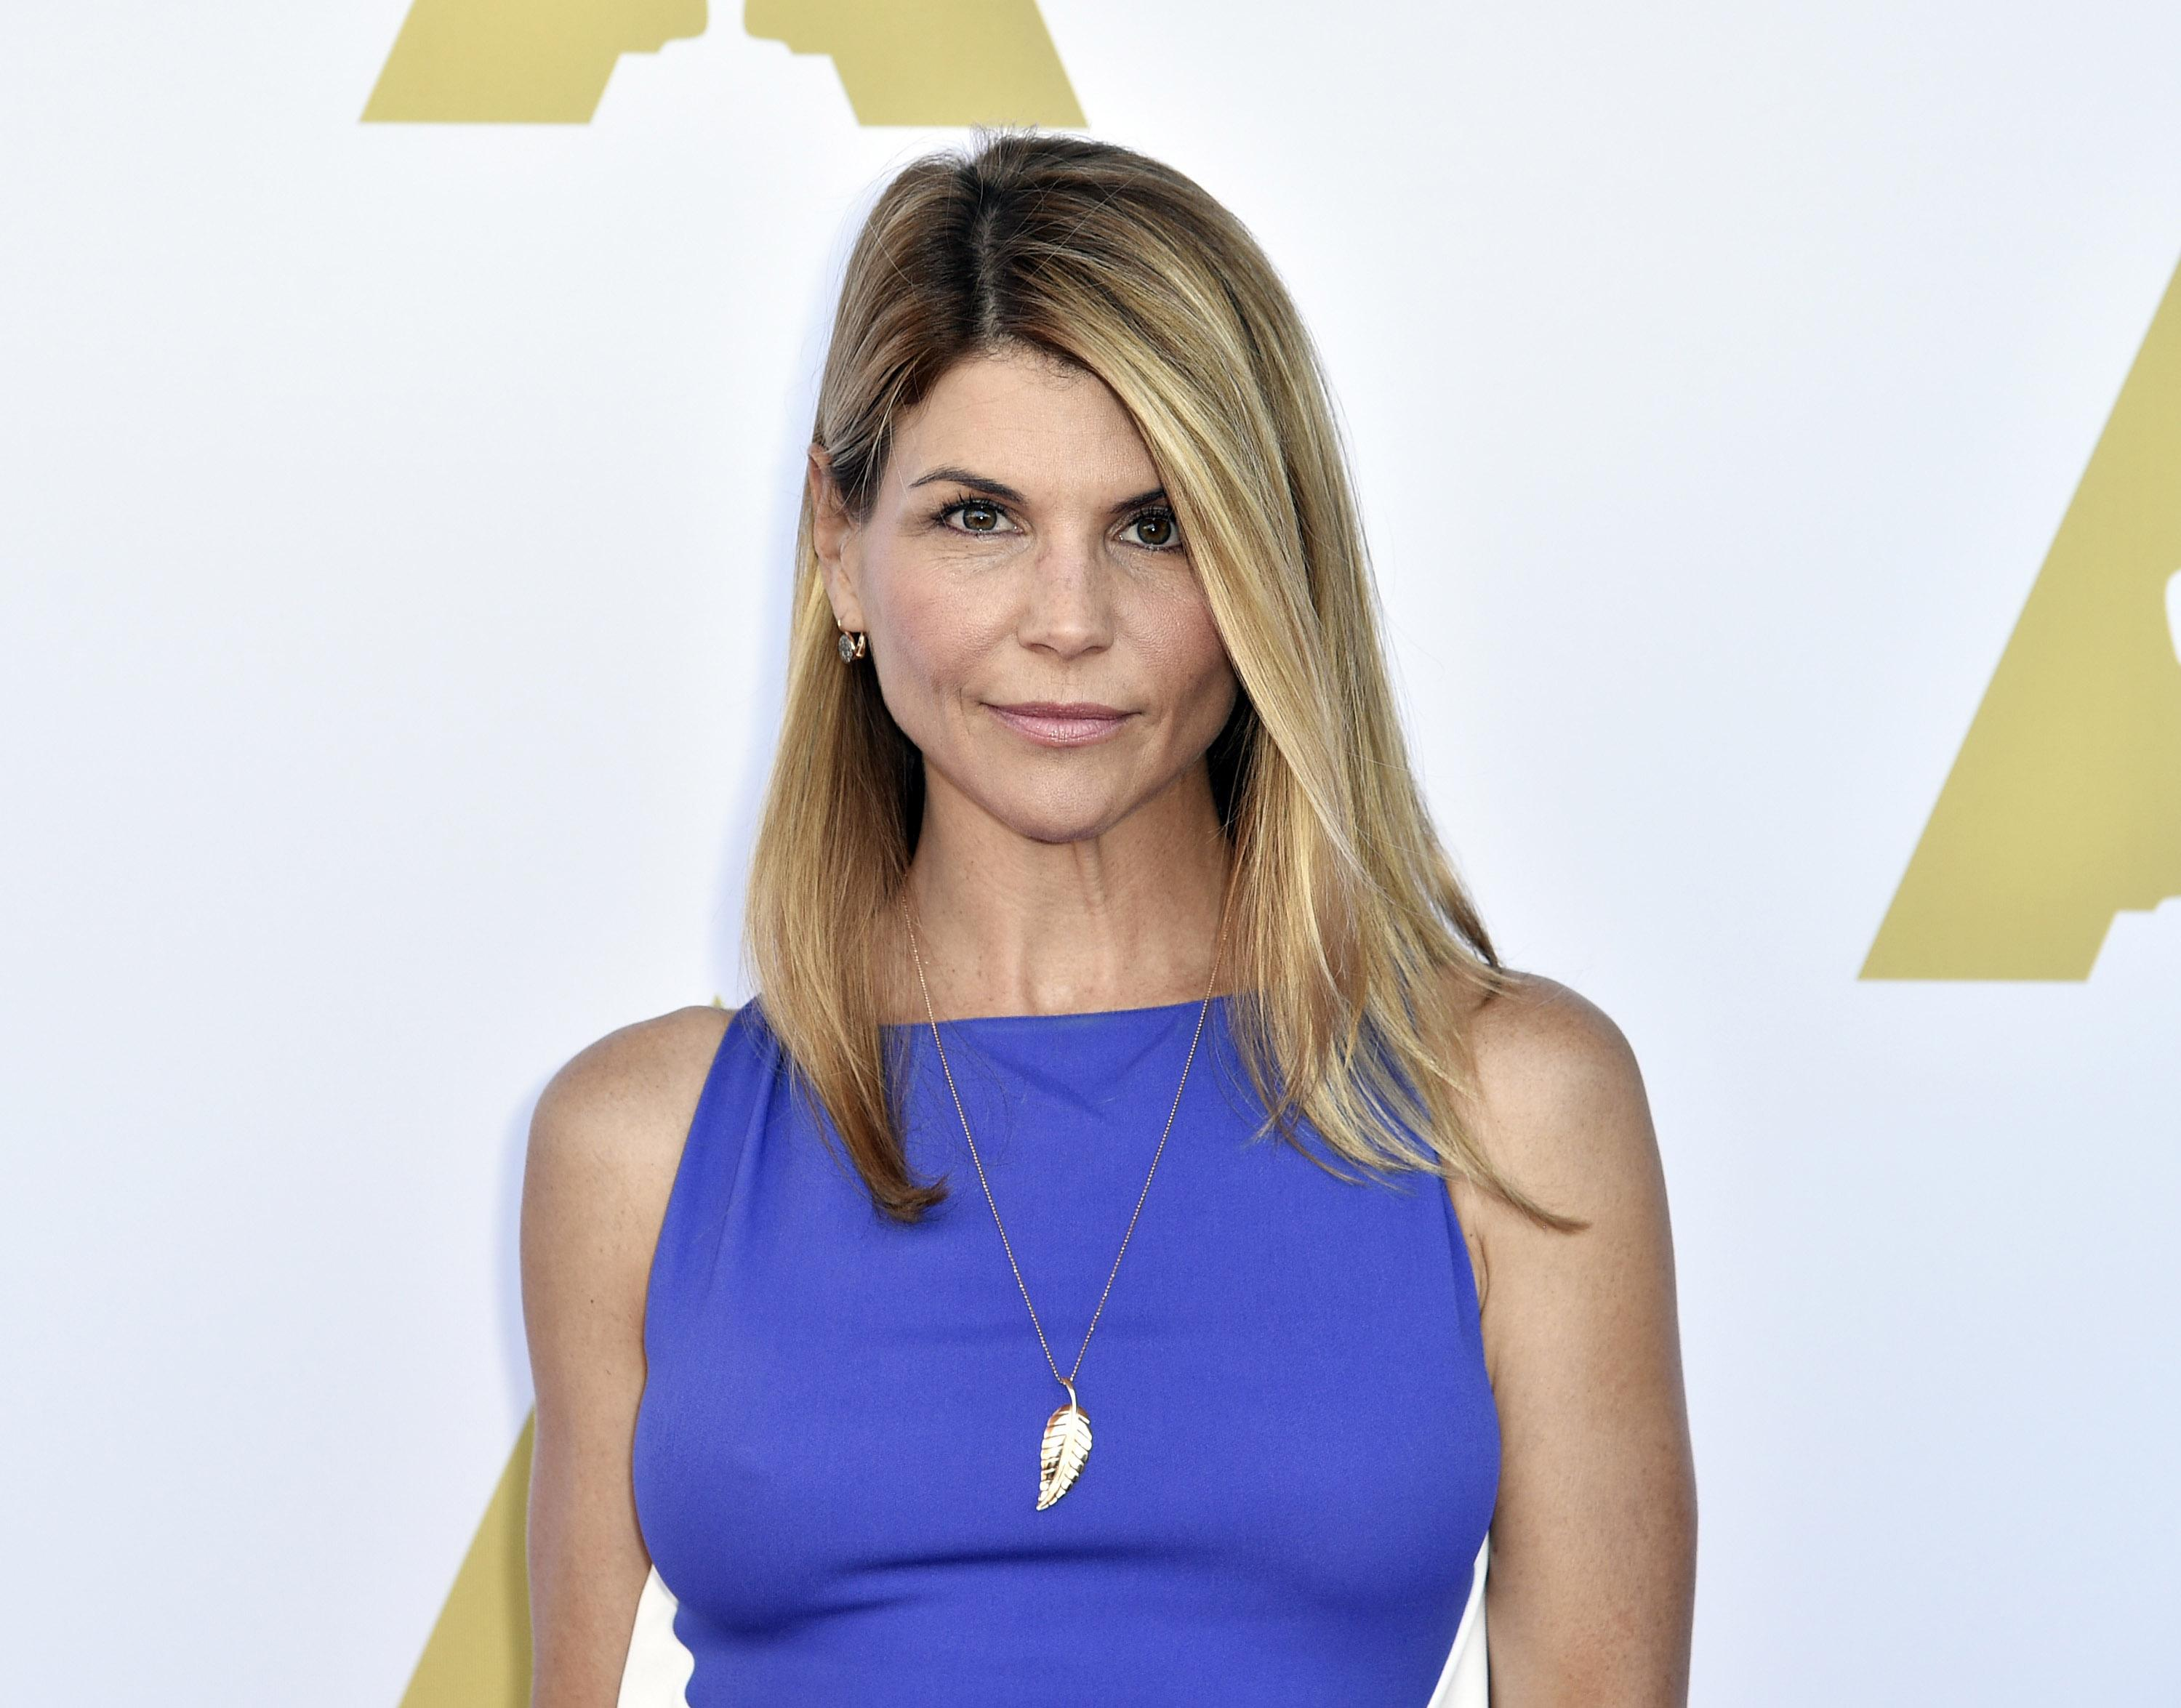 Lori Loughlin's Jail Sentence Is A 'Nightmare' For Her Daughters